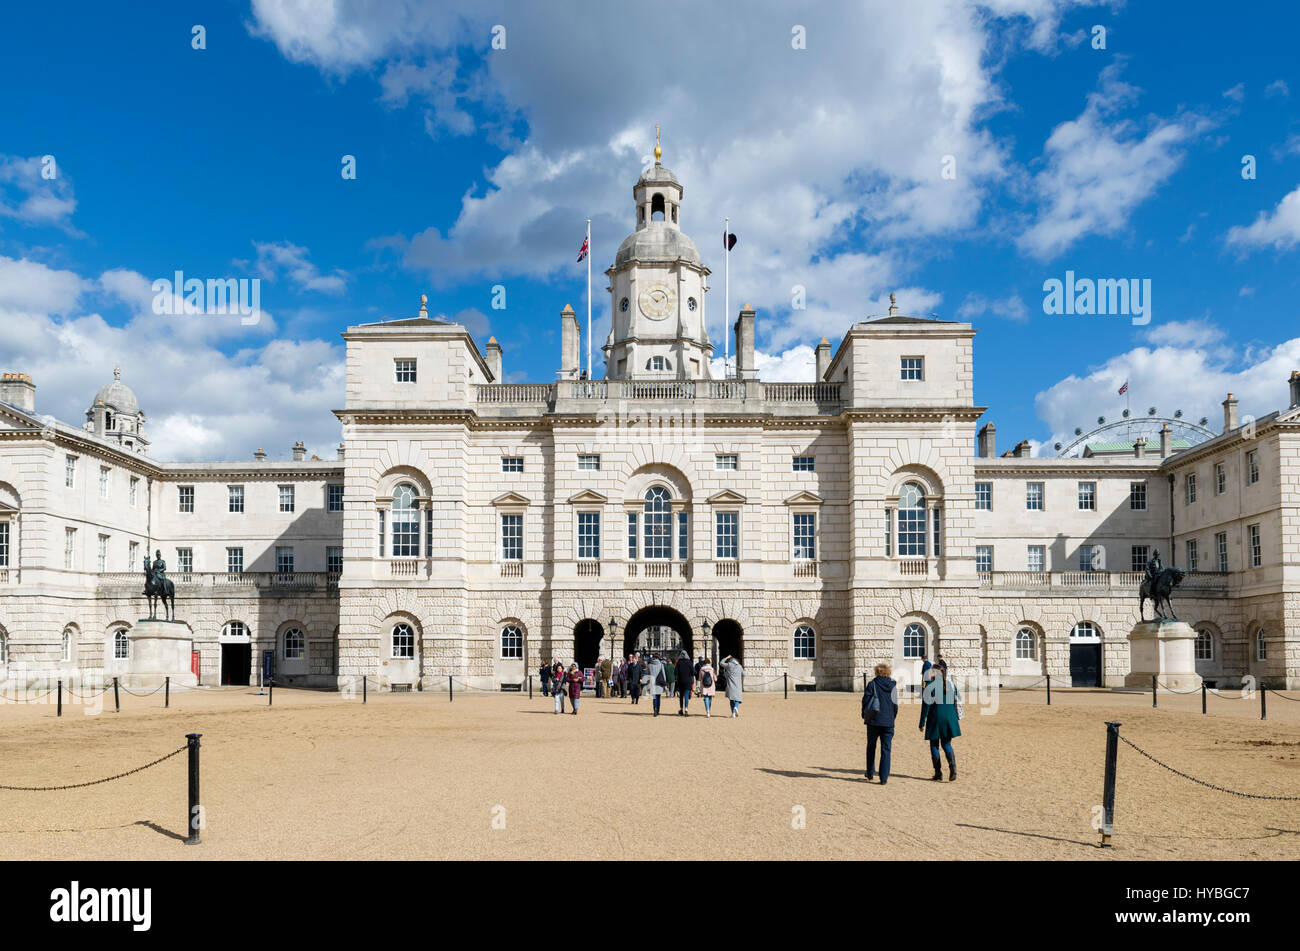 Horse Guards building de Horse Guards Parade, Westminster, London, England, UK Photo Stock